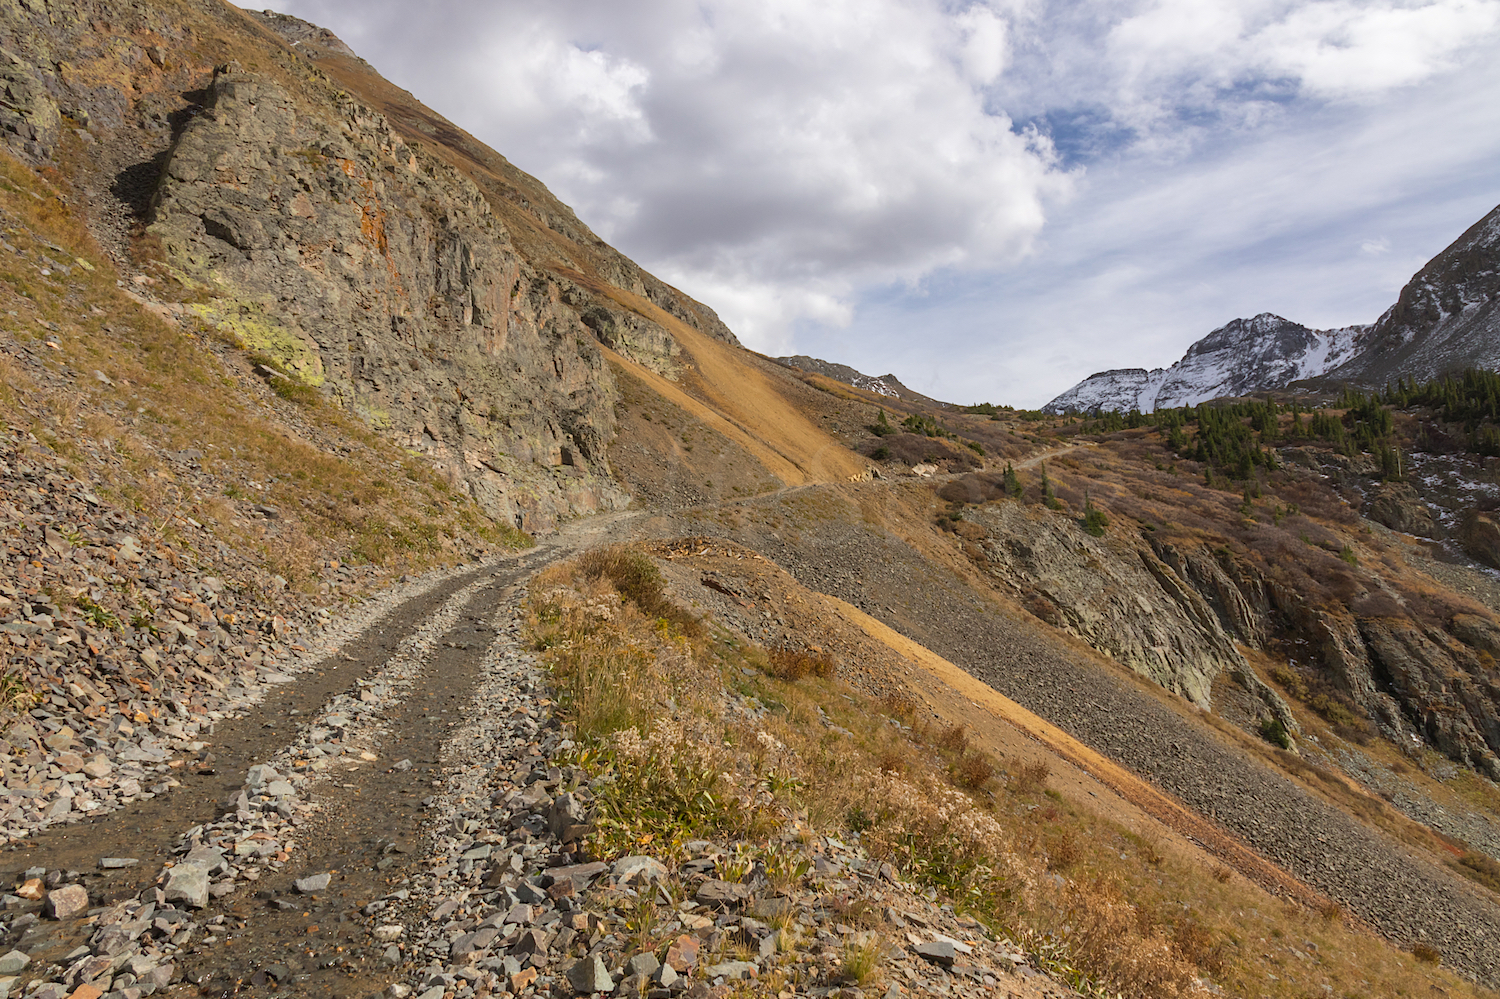 Road to Little Giant Basin, Image # 8884